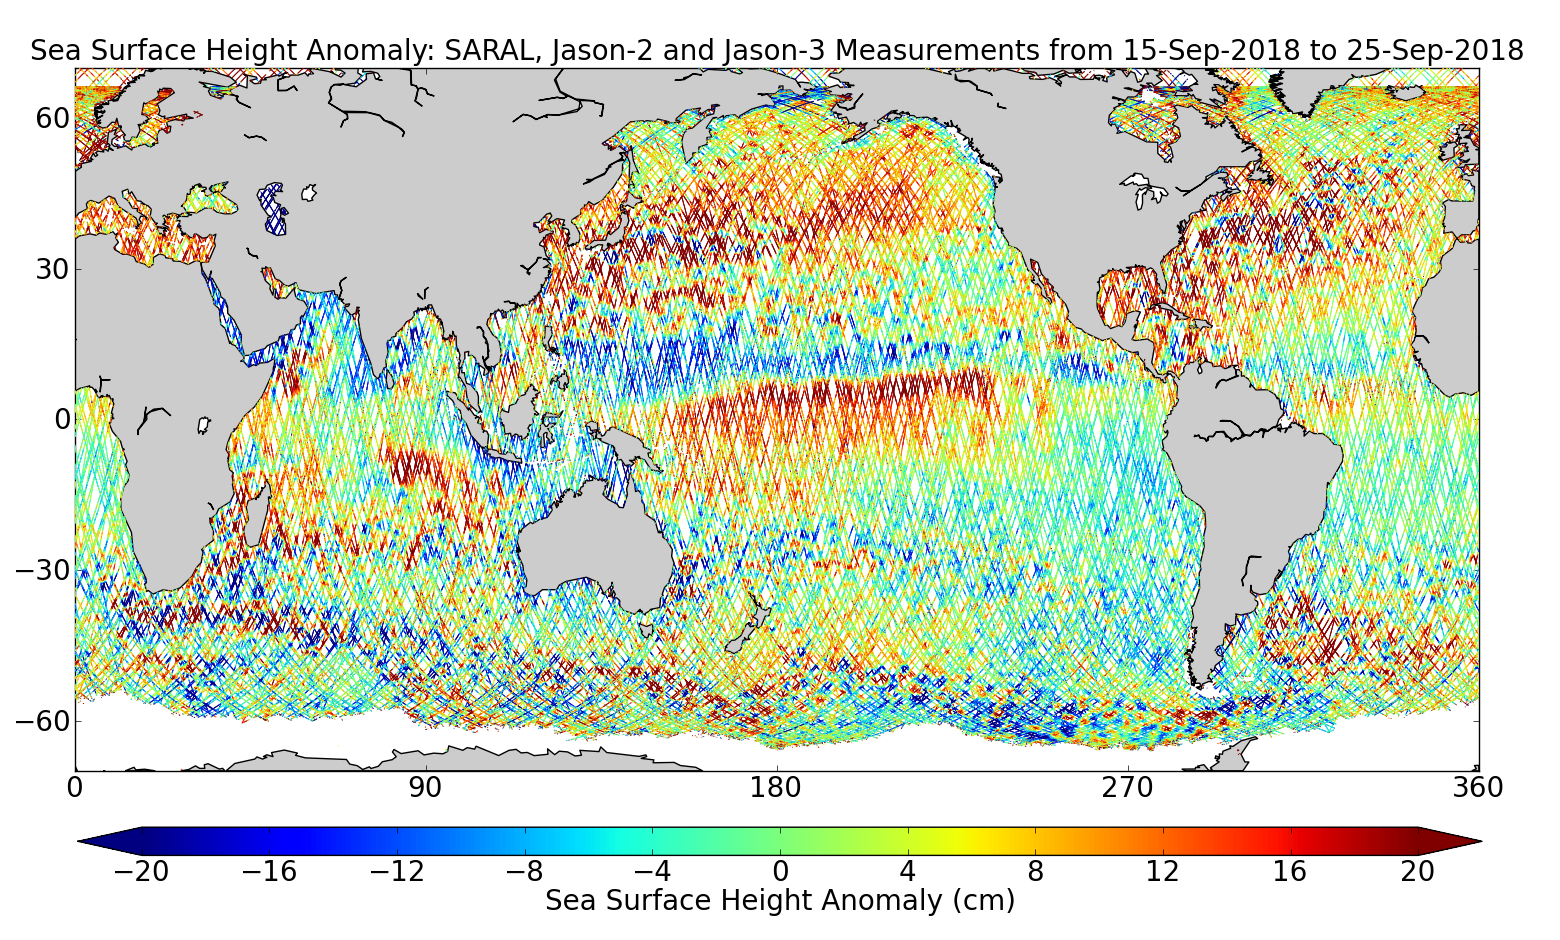 Sea Surface Height Anomaly: SARAL, Jason-2 and Jason-3 Measurements from 15-Sep-2018 to 25-Sep-2018